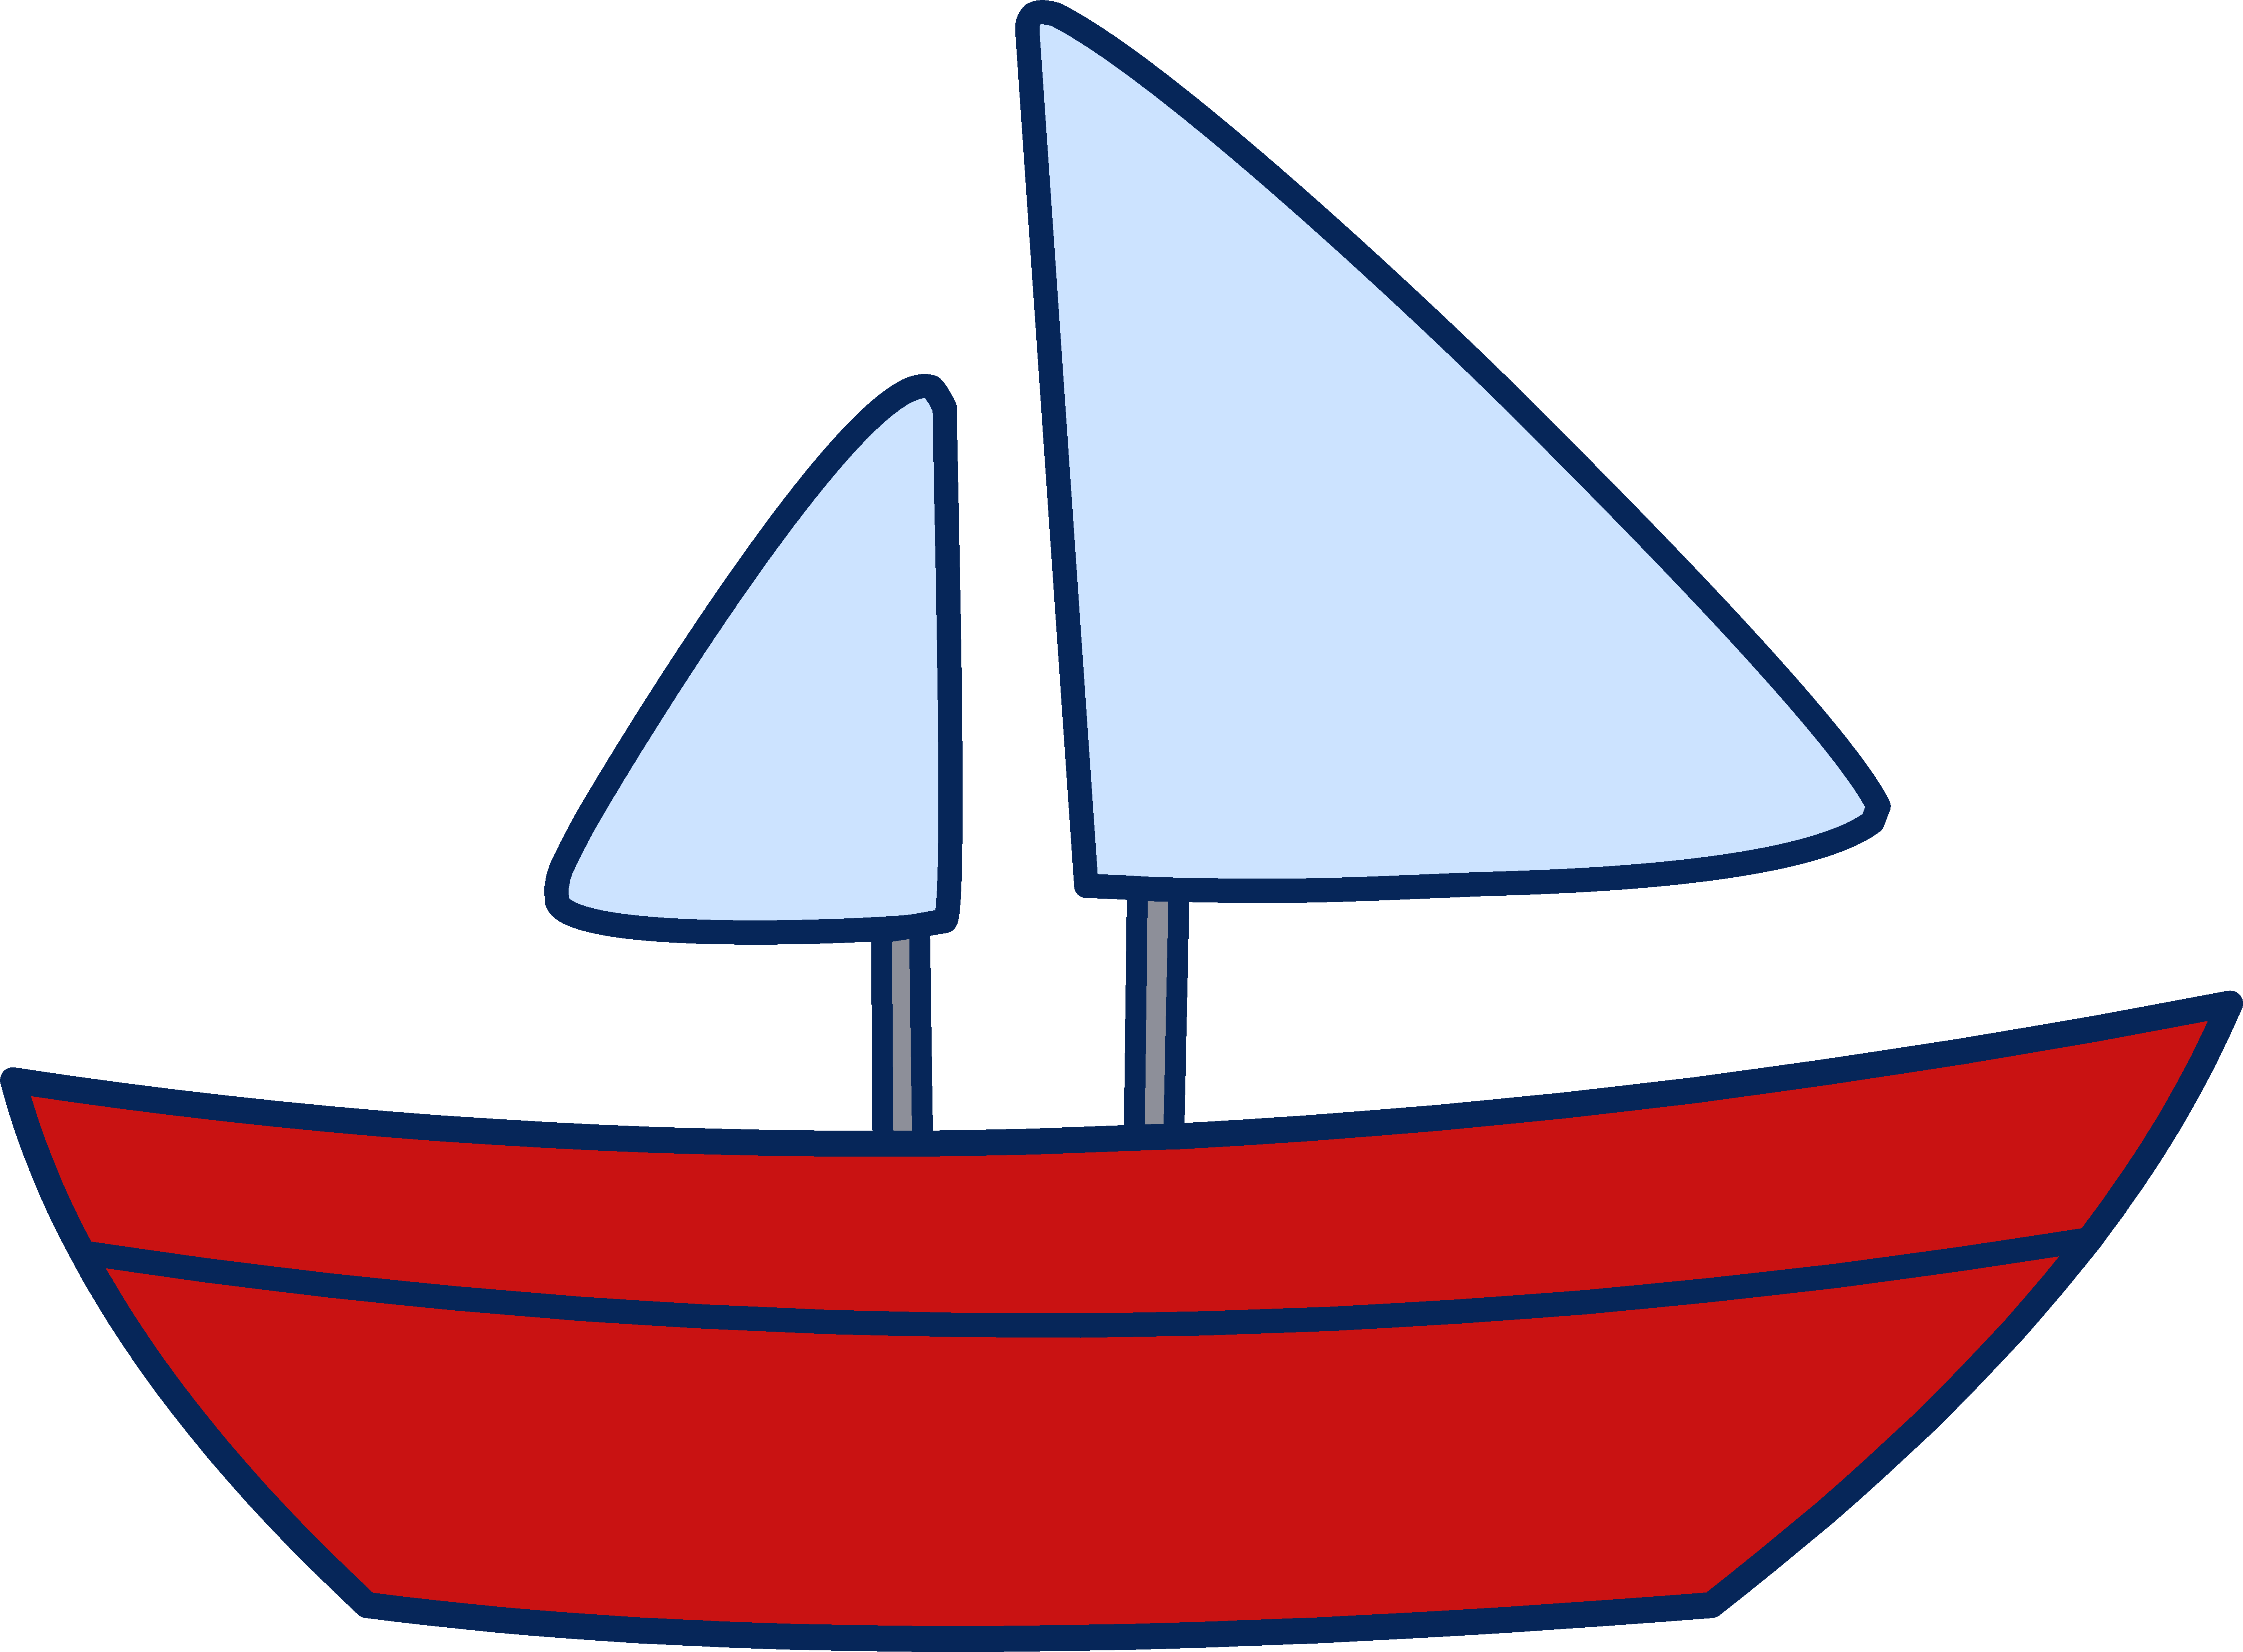 Ship necklace clipart #10